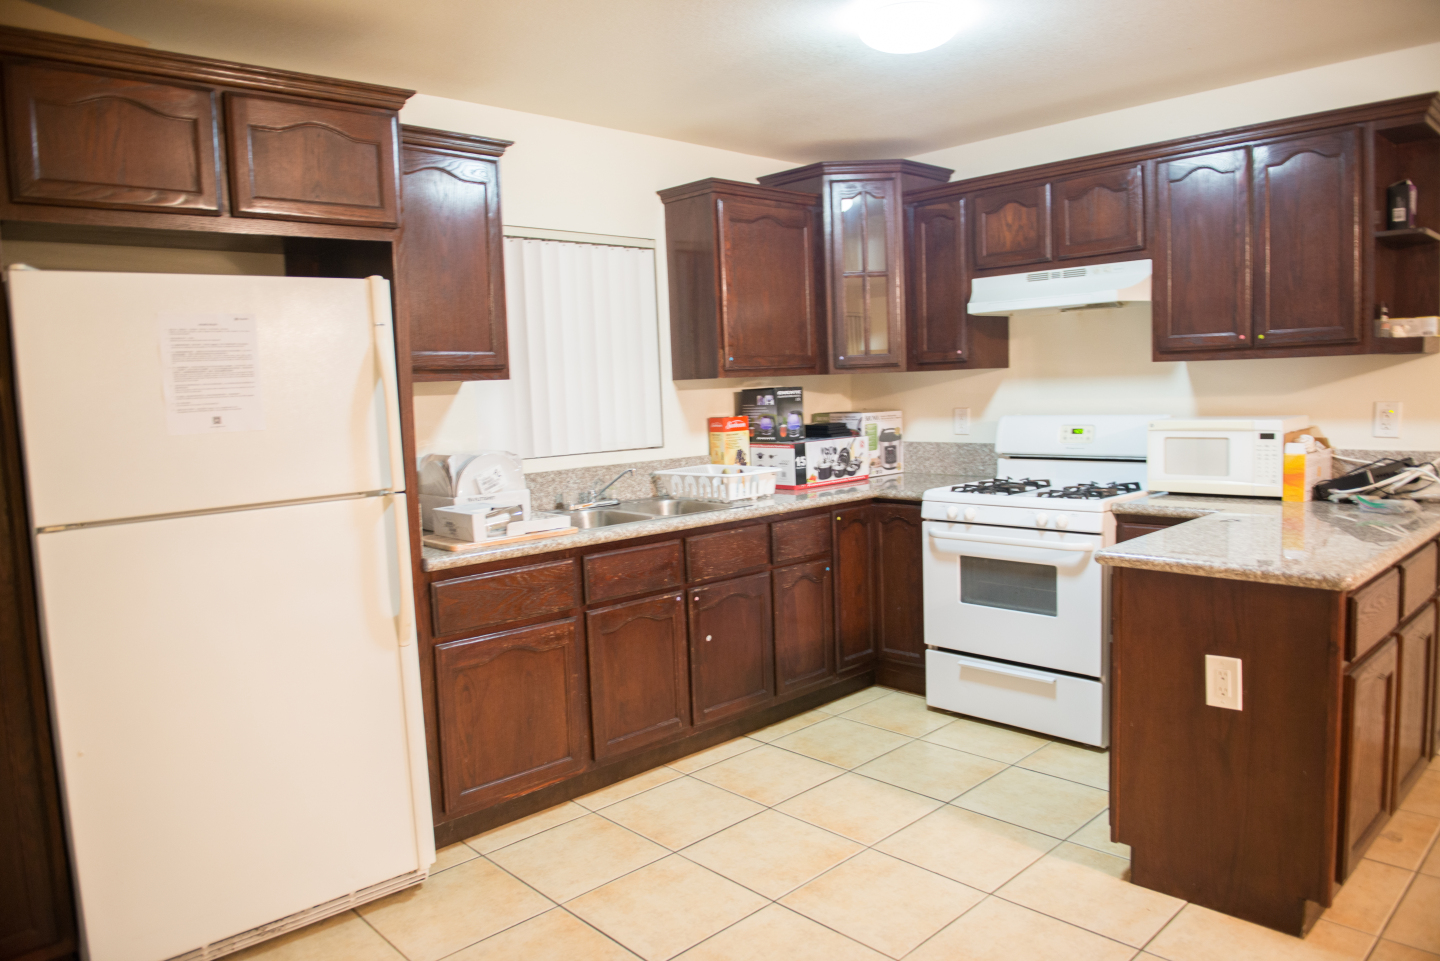 Large Kitchen, brown cabinets and white fridge